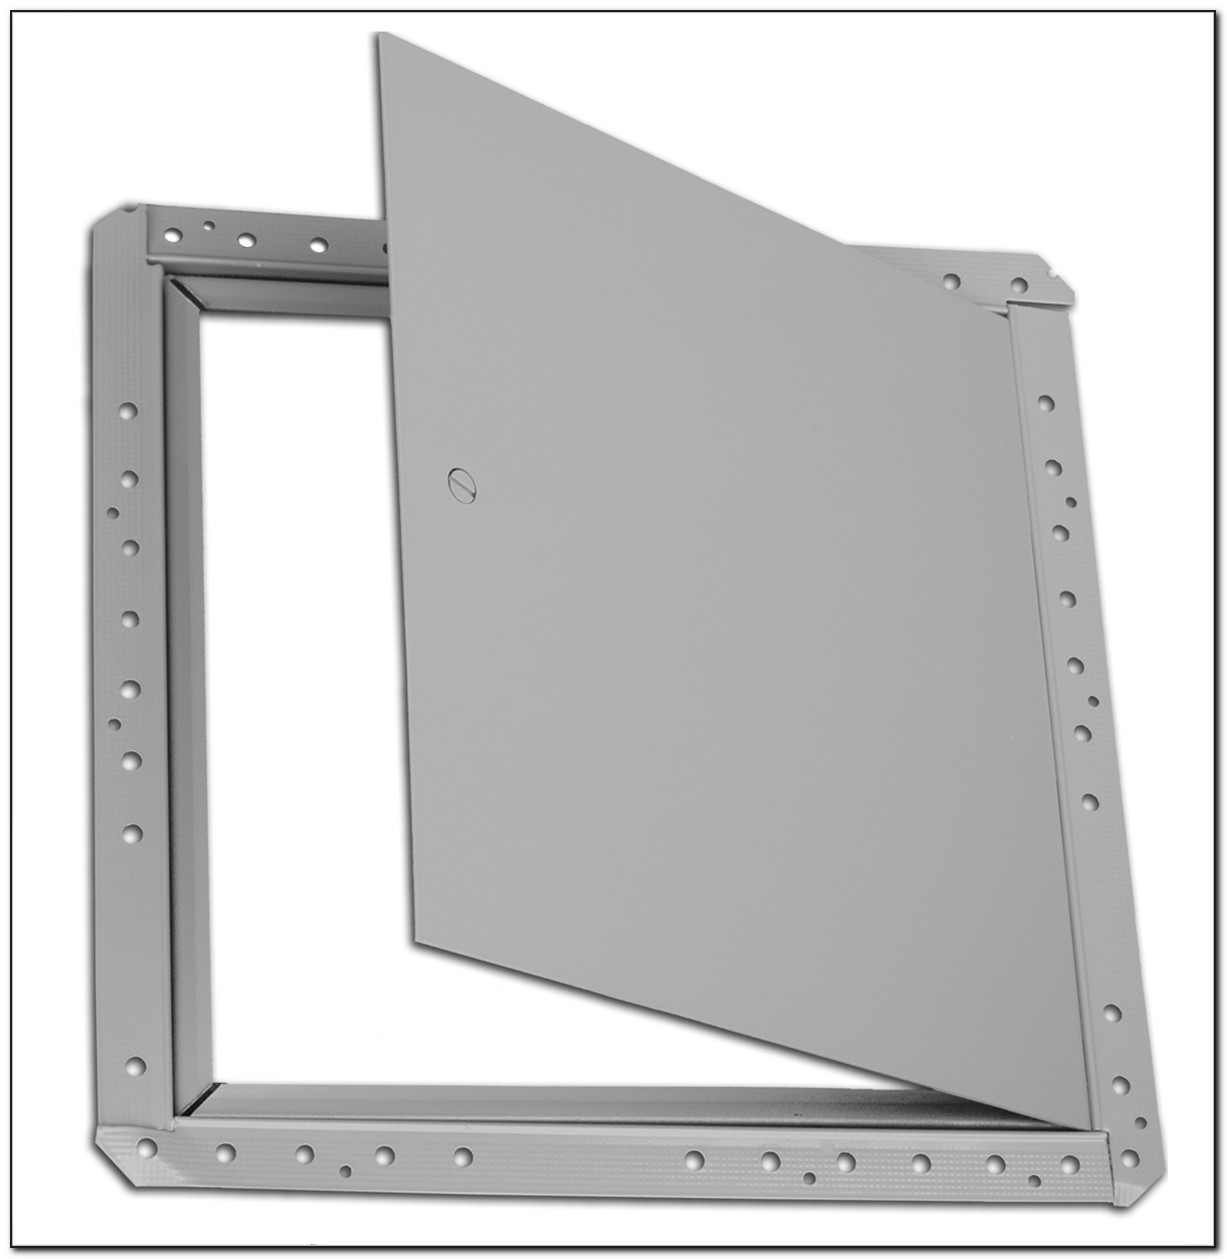 Ceiling Access Panel Sizes